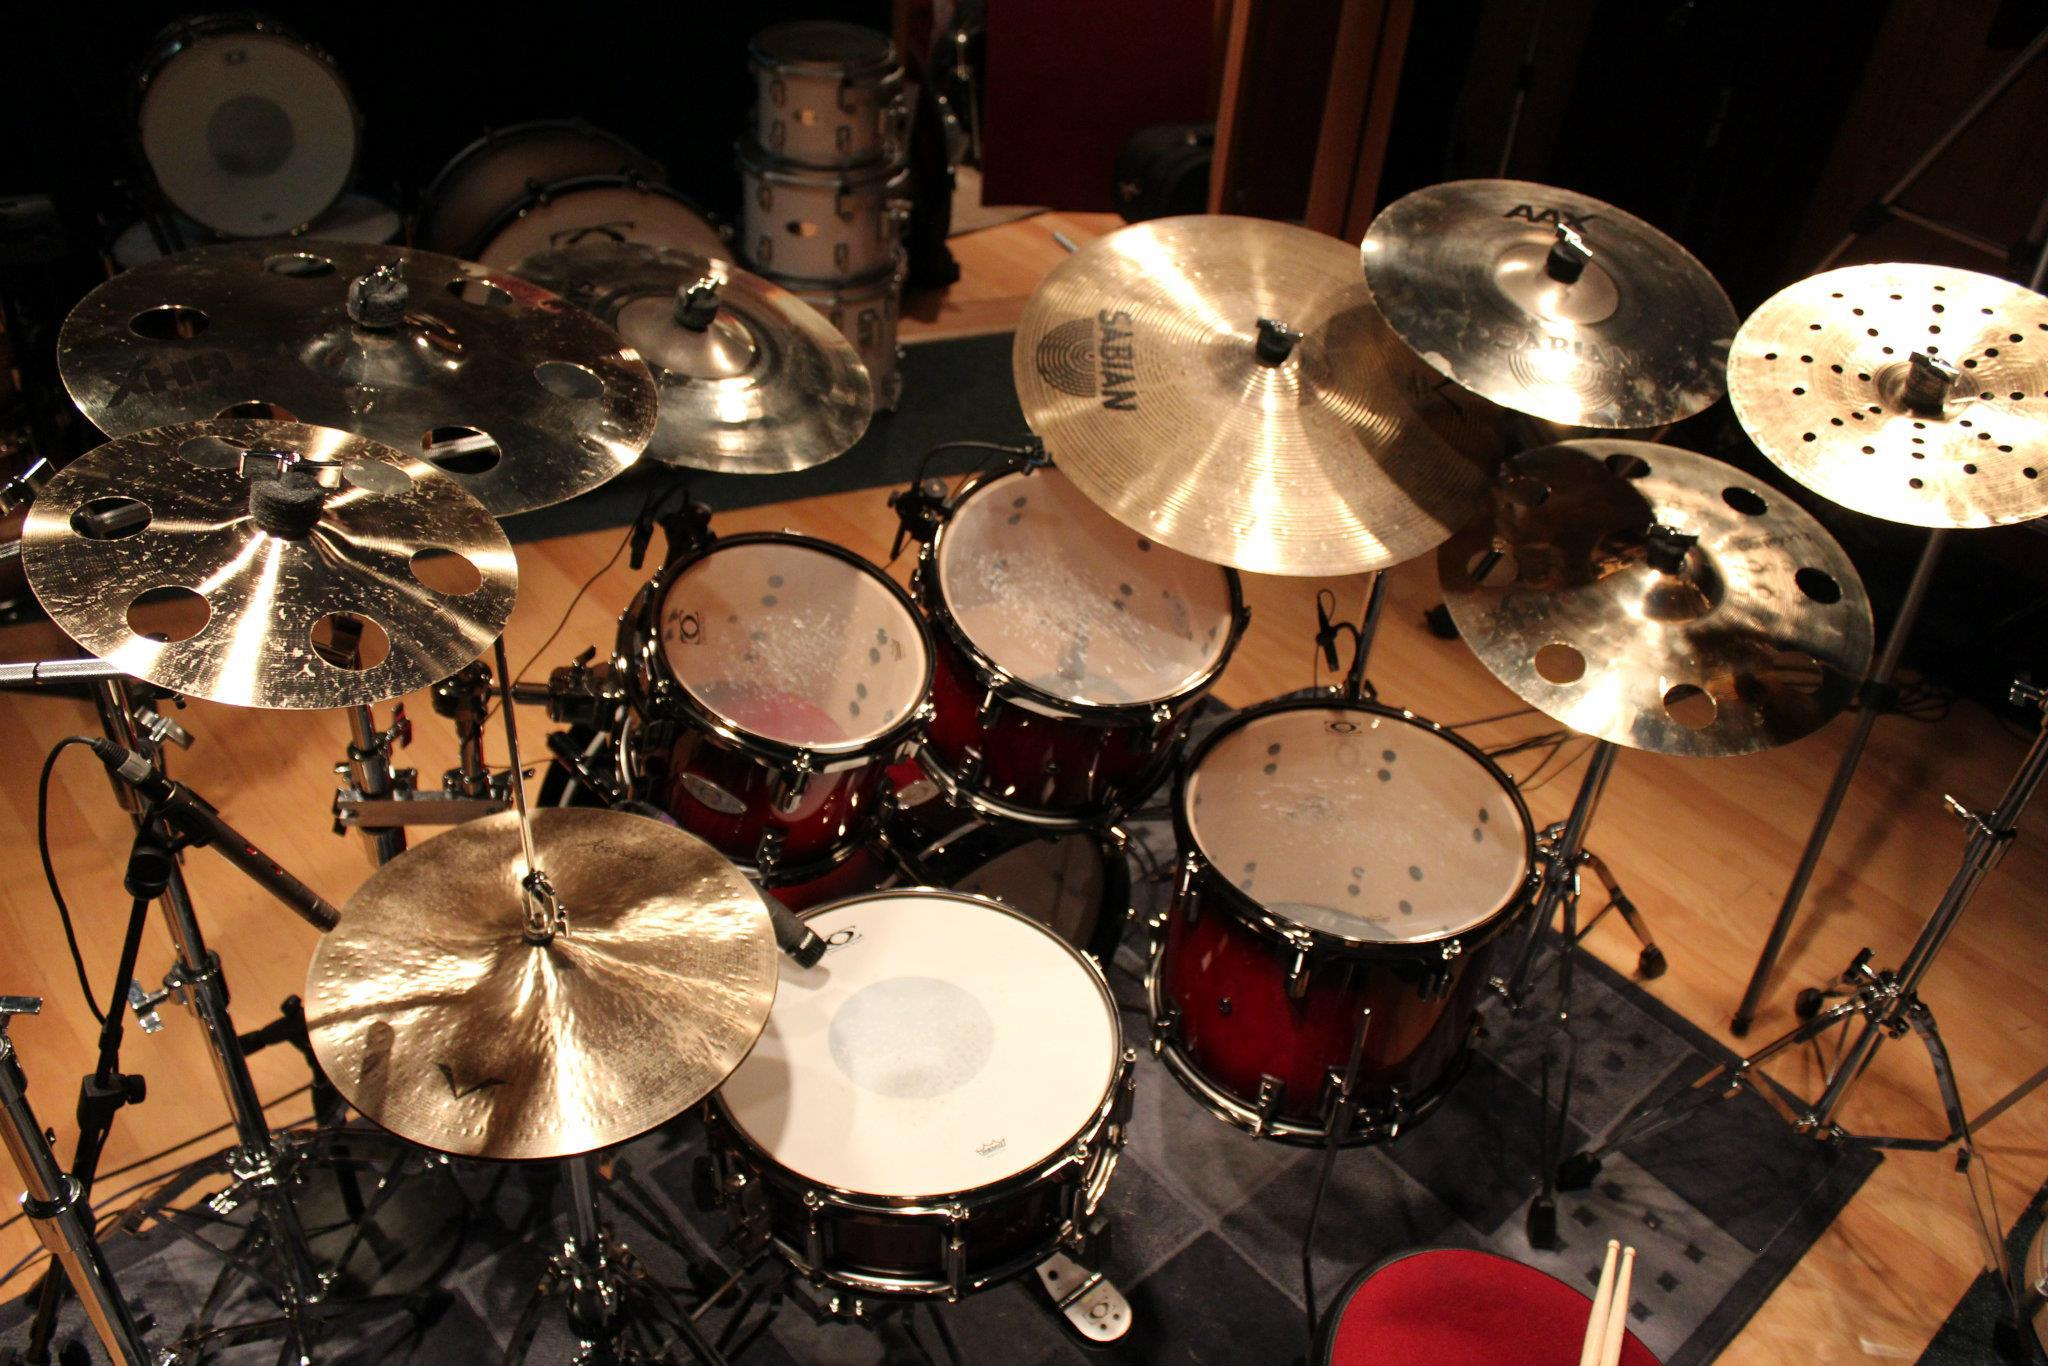 Funk kit set up